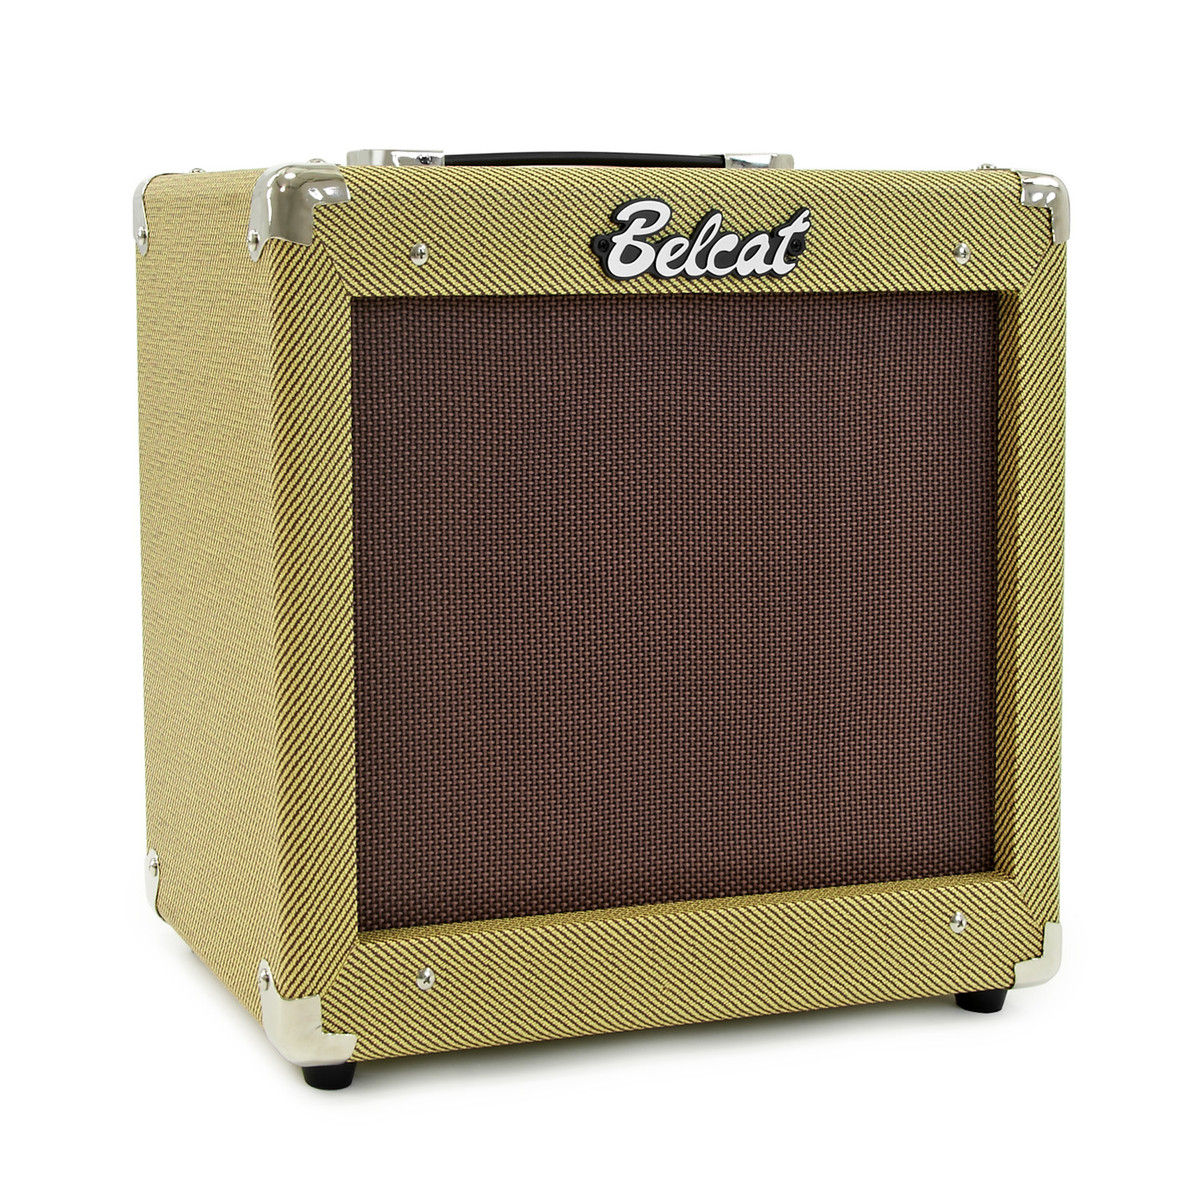 belcat v35b vintage 35w bass combo amp by gear4music box opened at. Black Bedroom Furniture Sets. Home Design Ideas